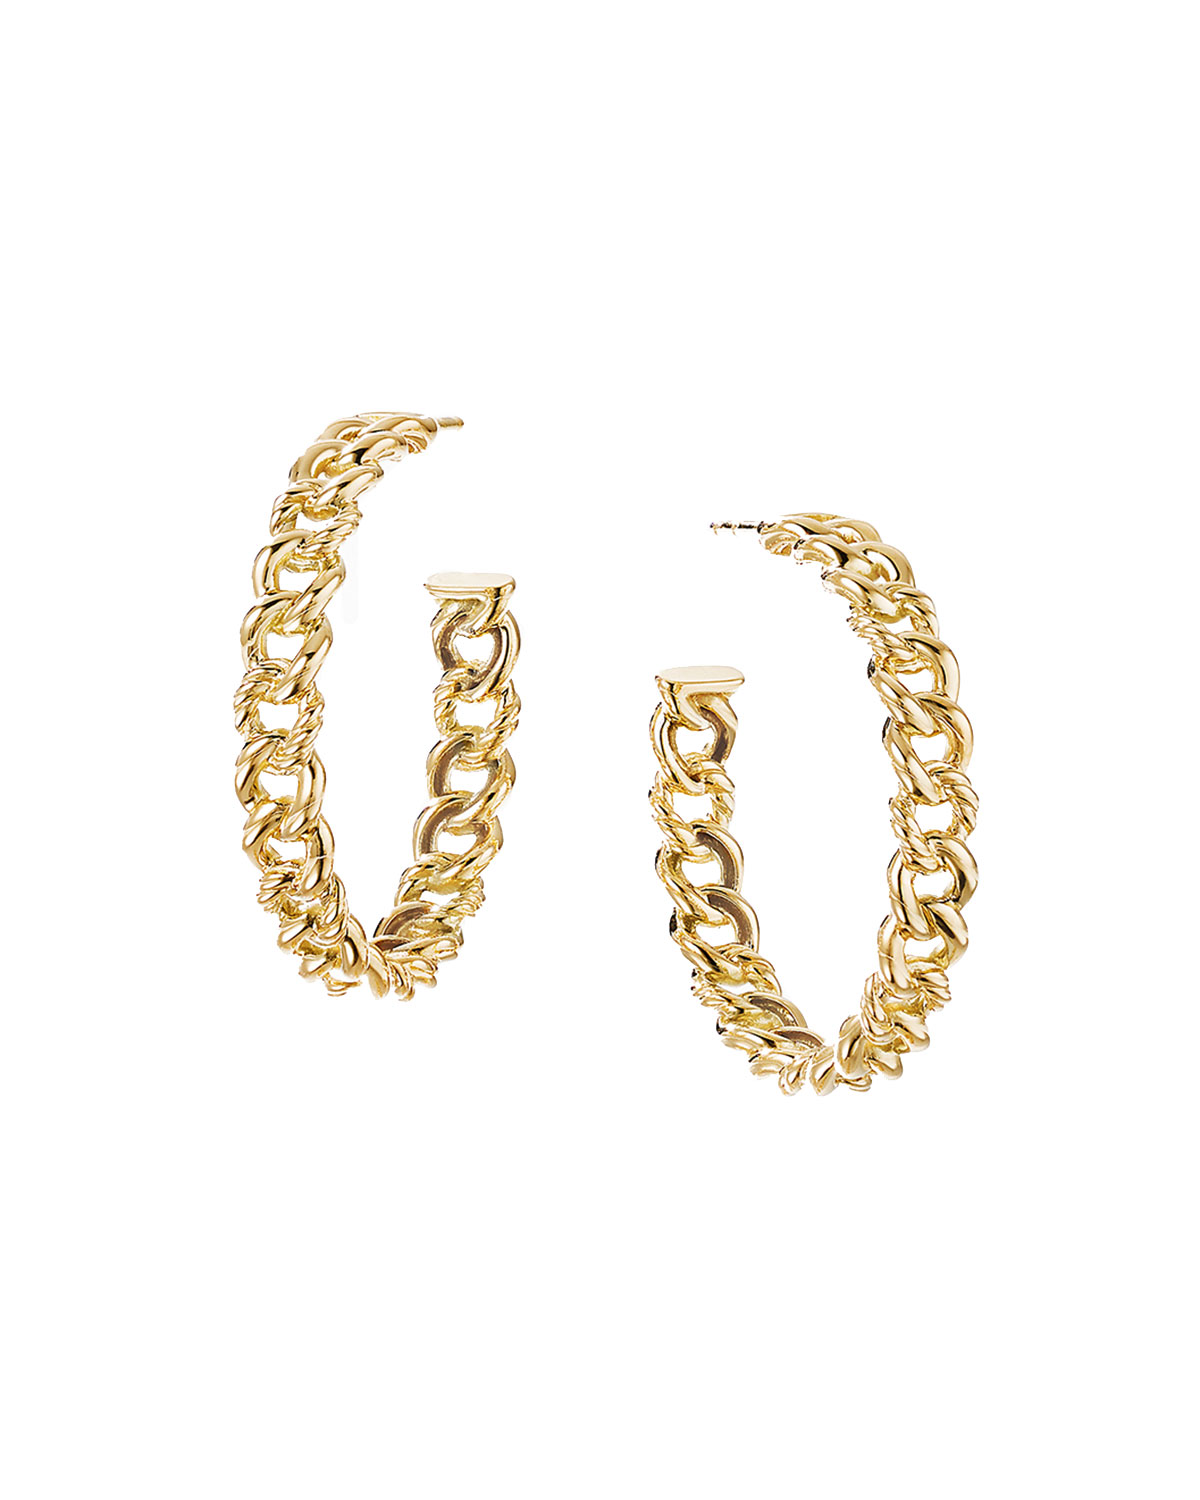 David Yurman Belmont ID Hoop Earrings in 18k Gold